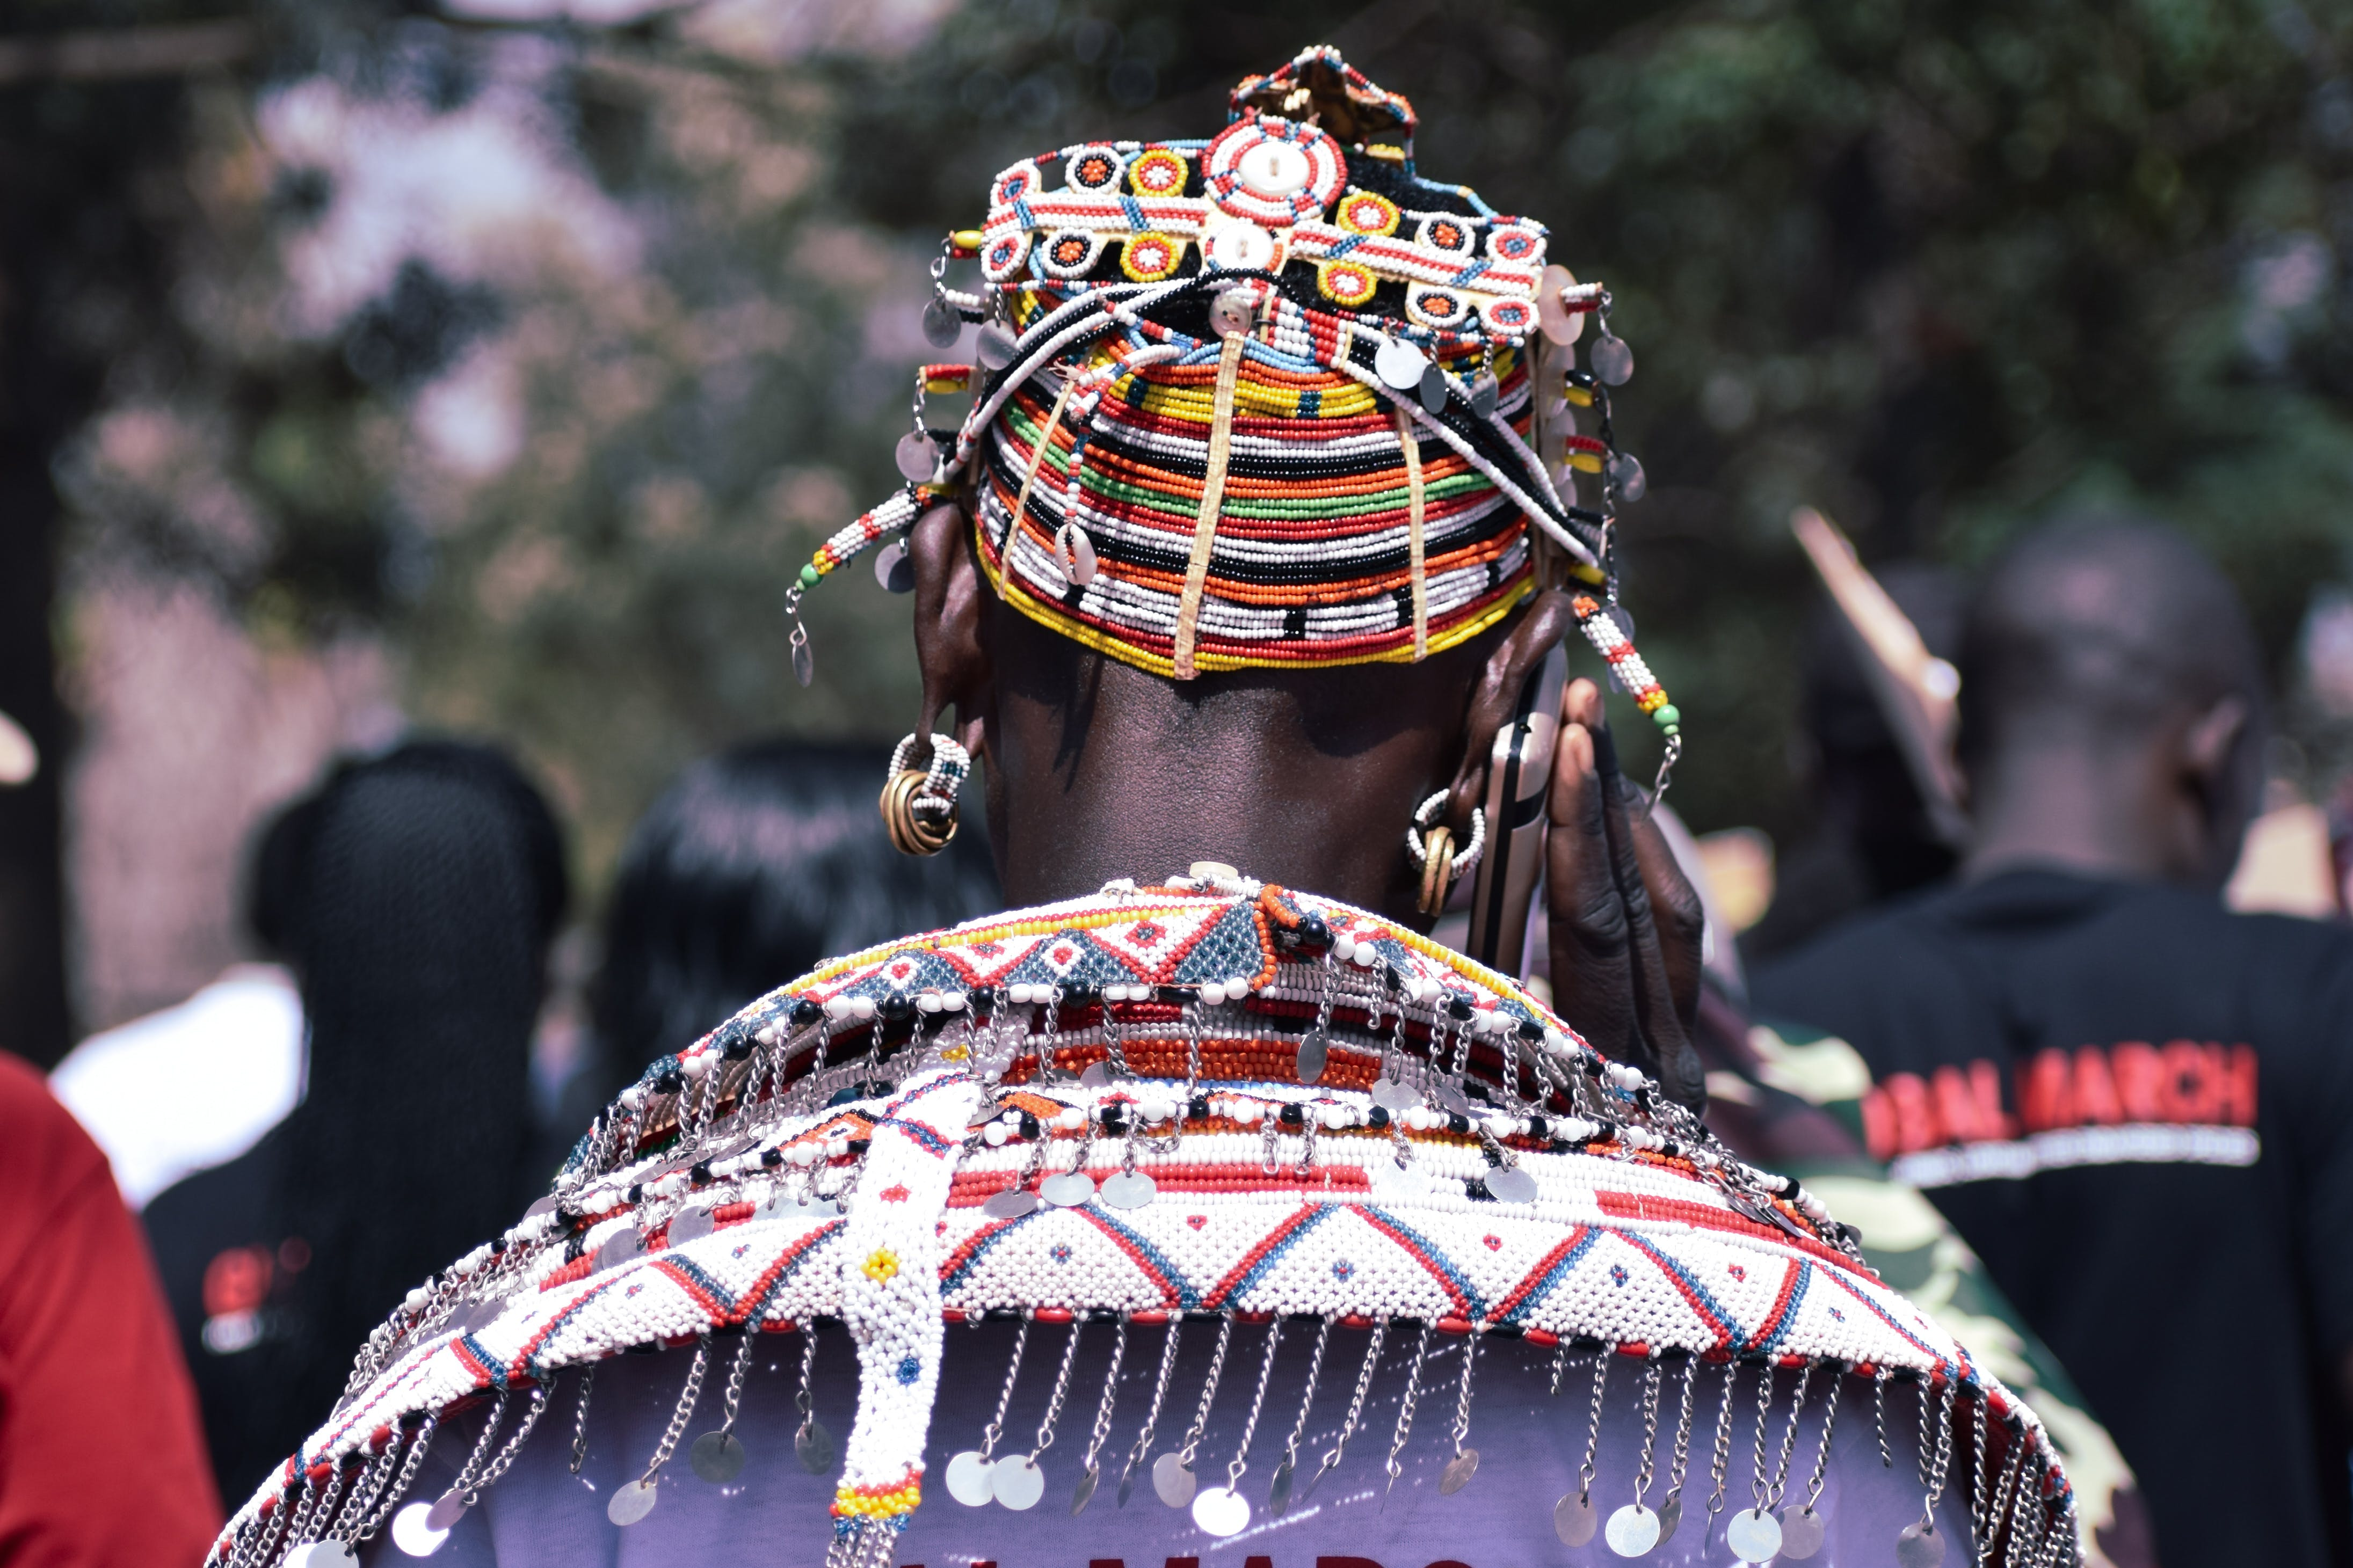 Back View of Person Wearing Beaded Headpiece